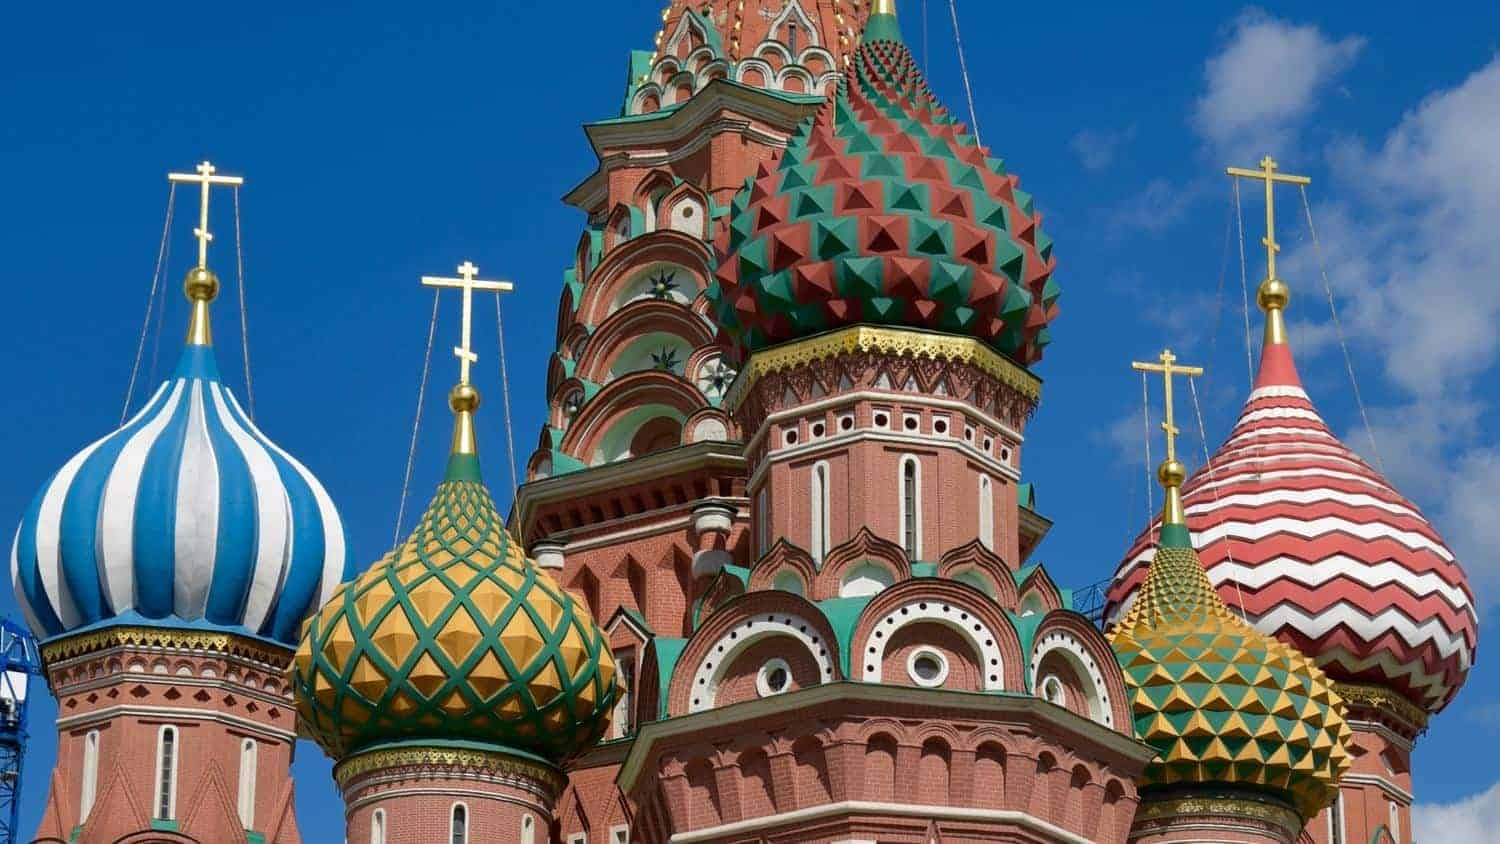 St Basils. The Best Of moscow attractions